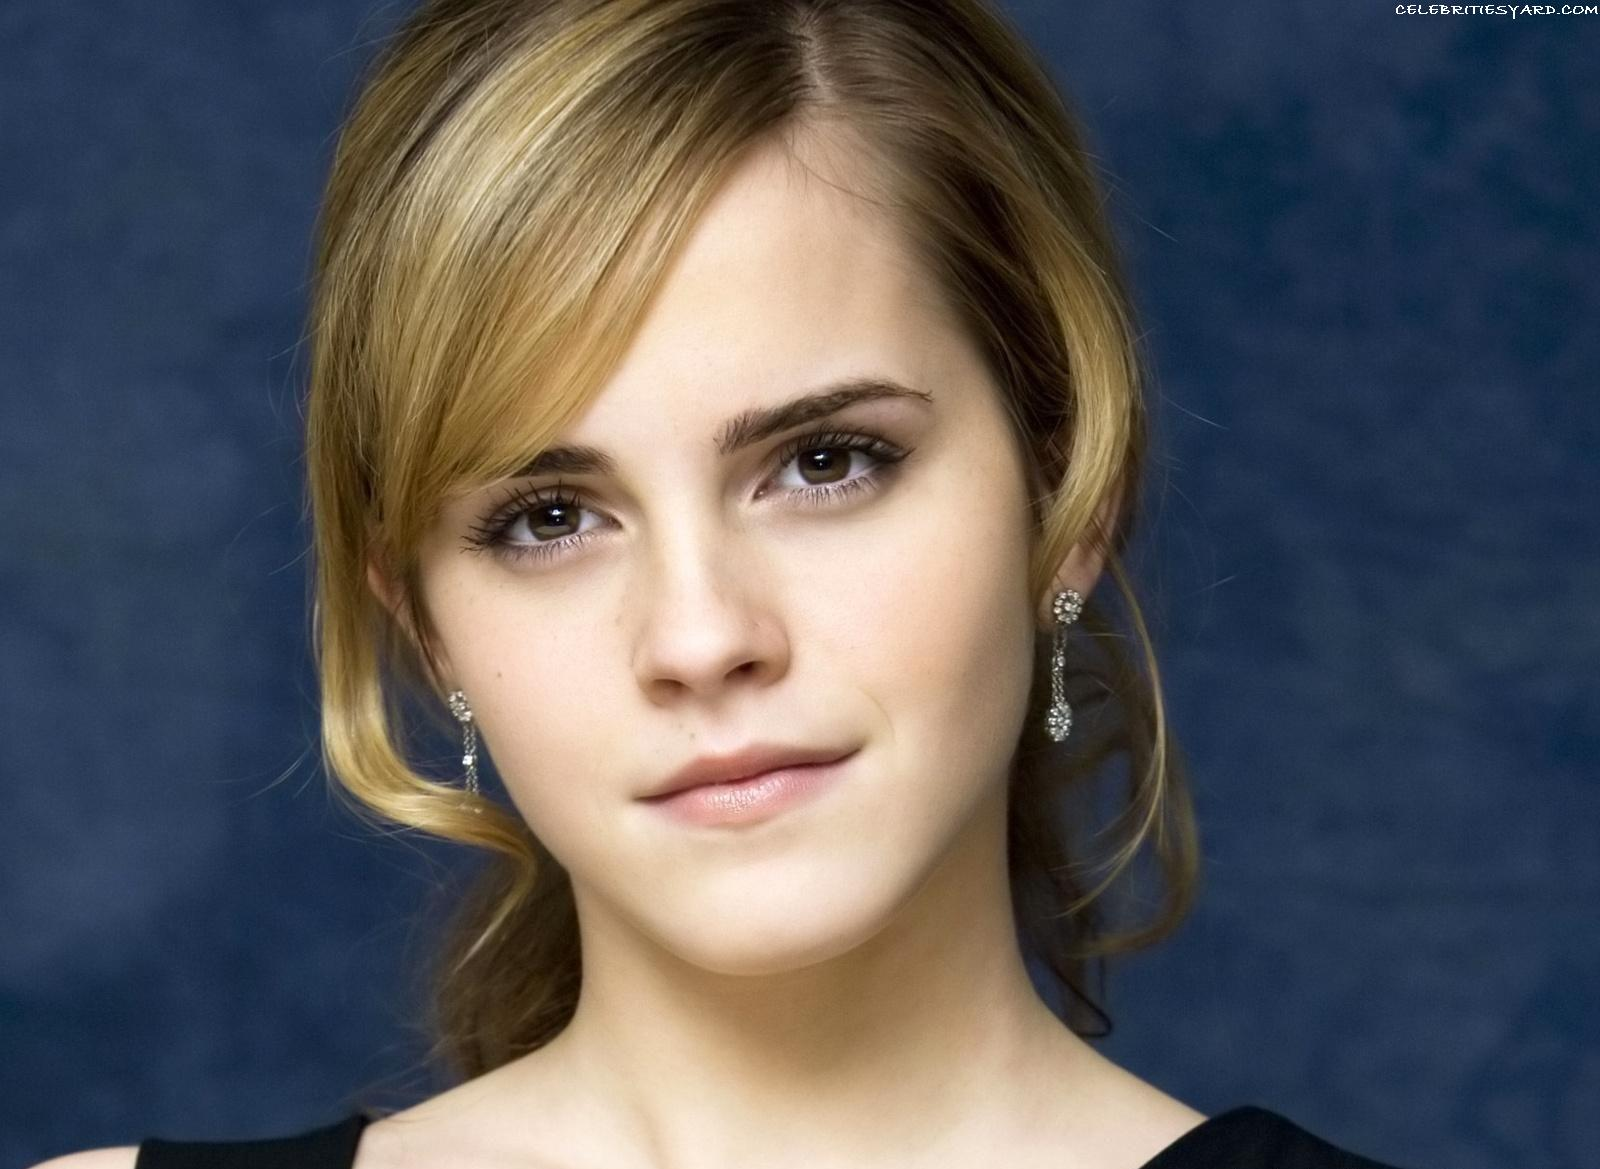 Wallpapers Of Emma Watson Hollywood Actress | Free Desktop Wallpapers